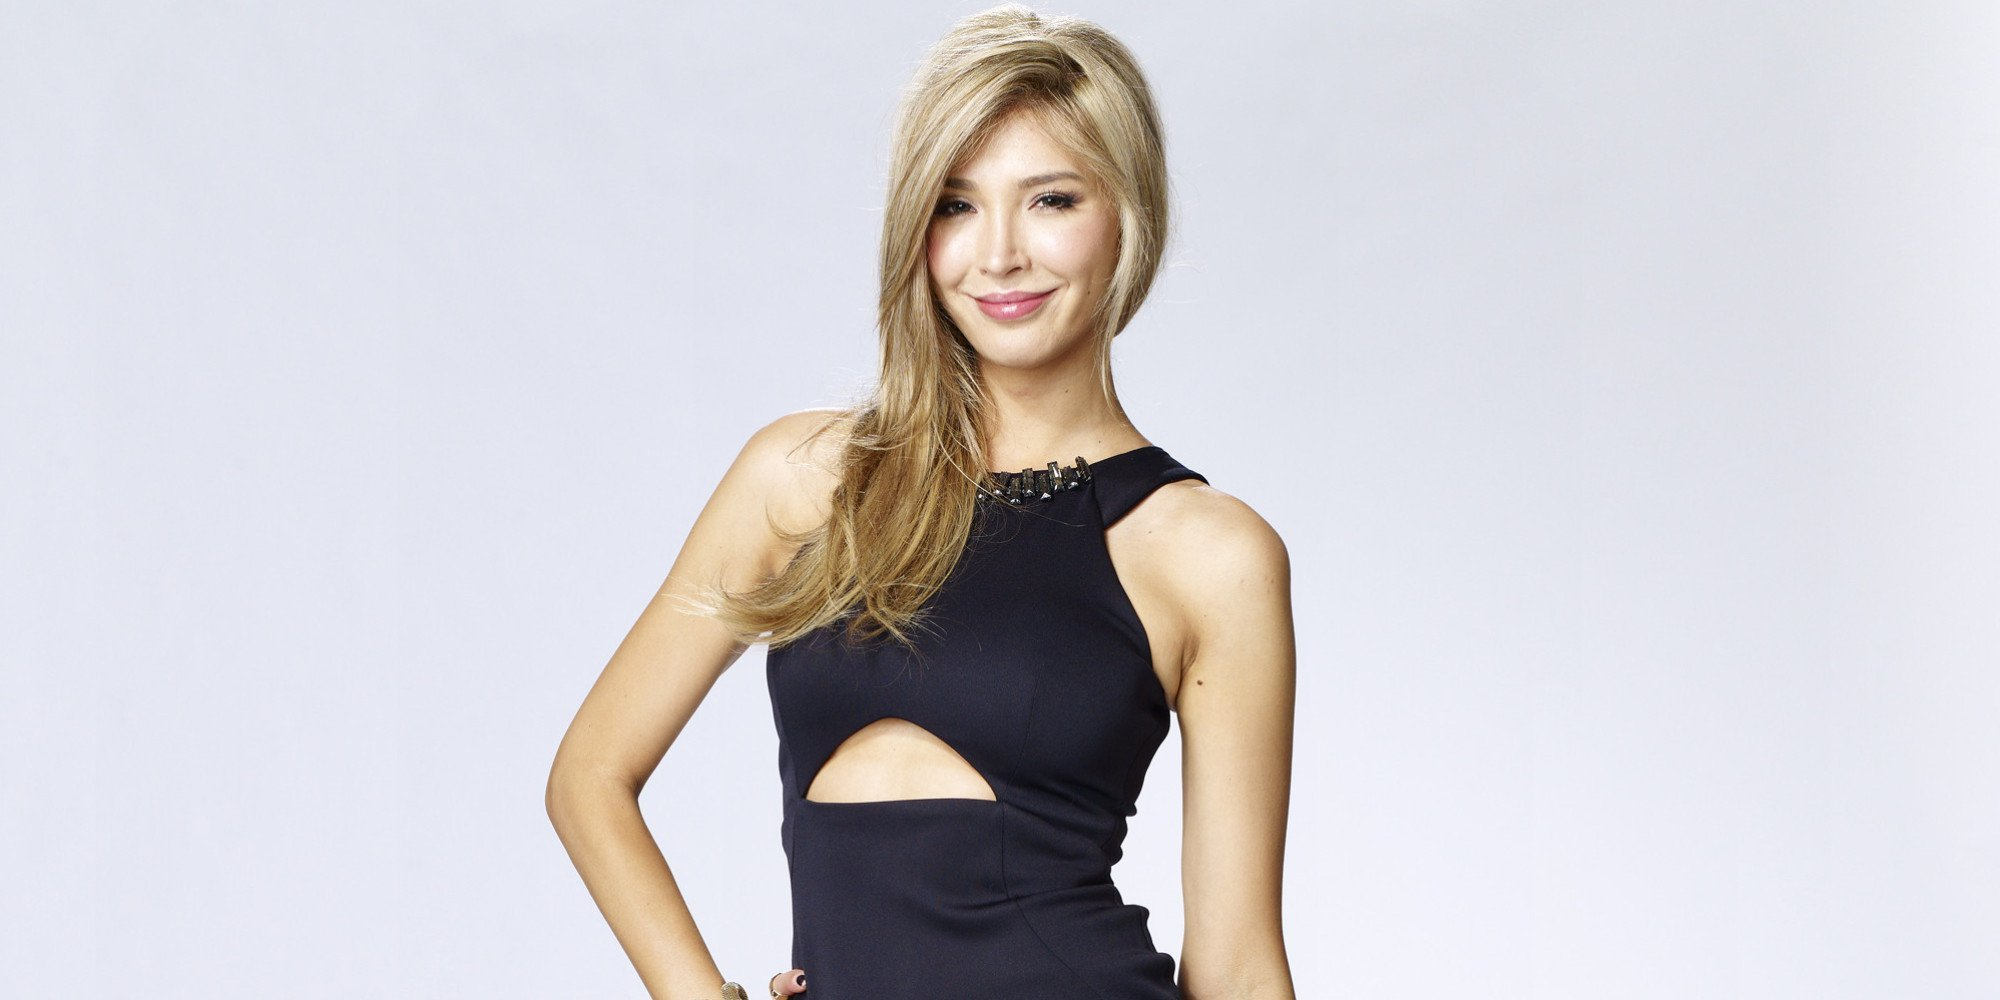 A Canadian Model And Tv Personality, She Became Famous When She Waged A  Legal Battle To Be Allowed Topete In The Miss Universe Canada After  Being